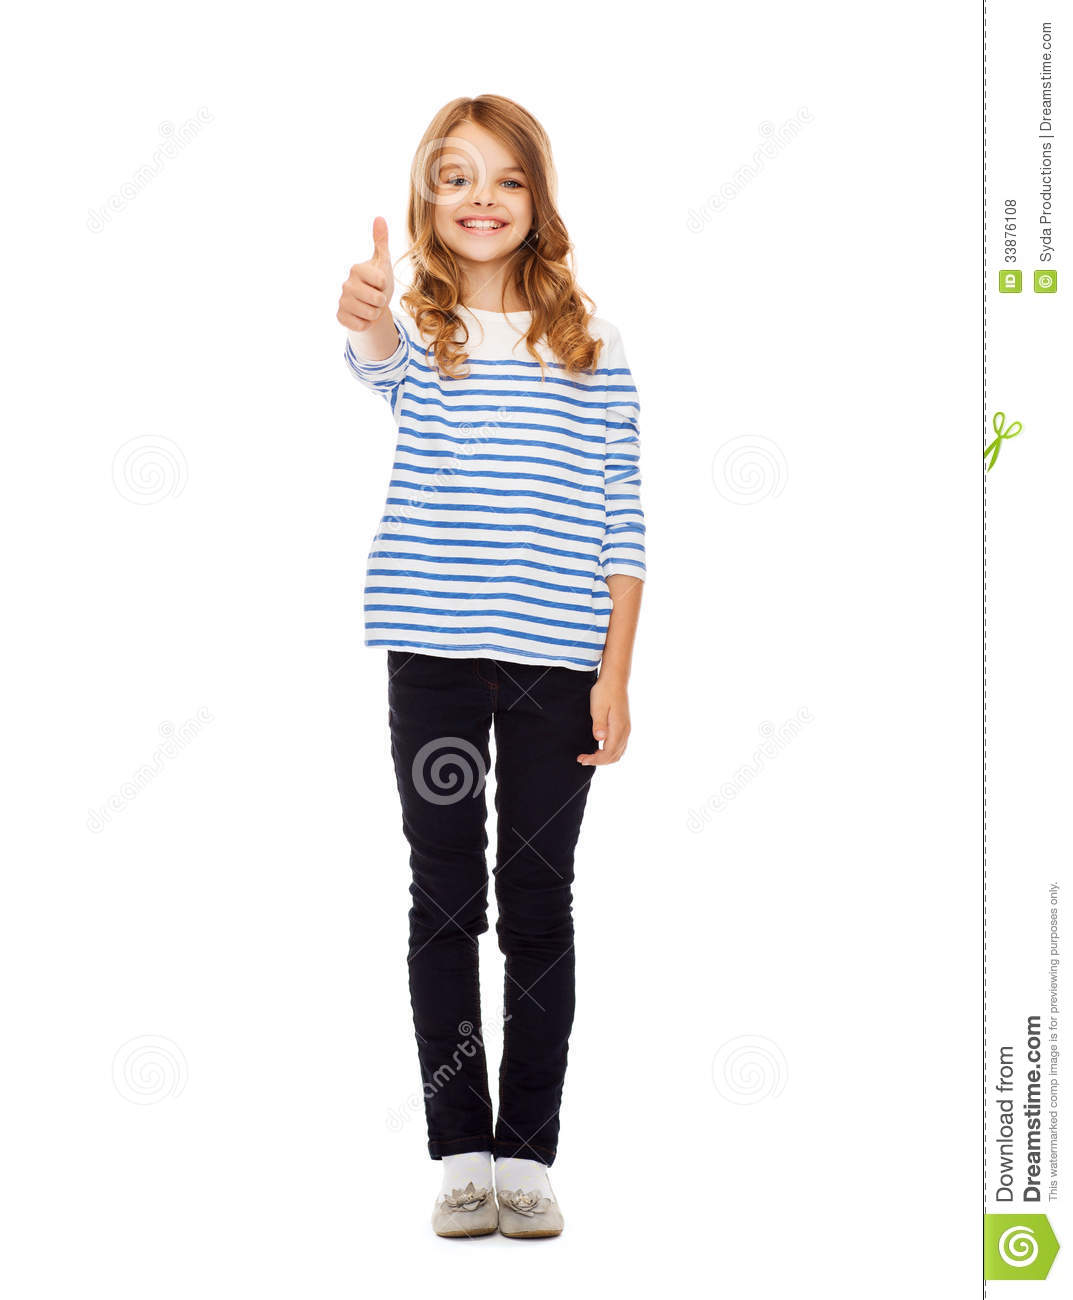 Cute little girl showing thumbs up